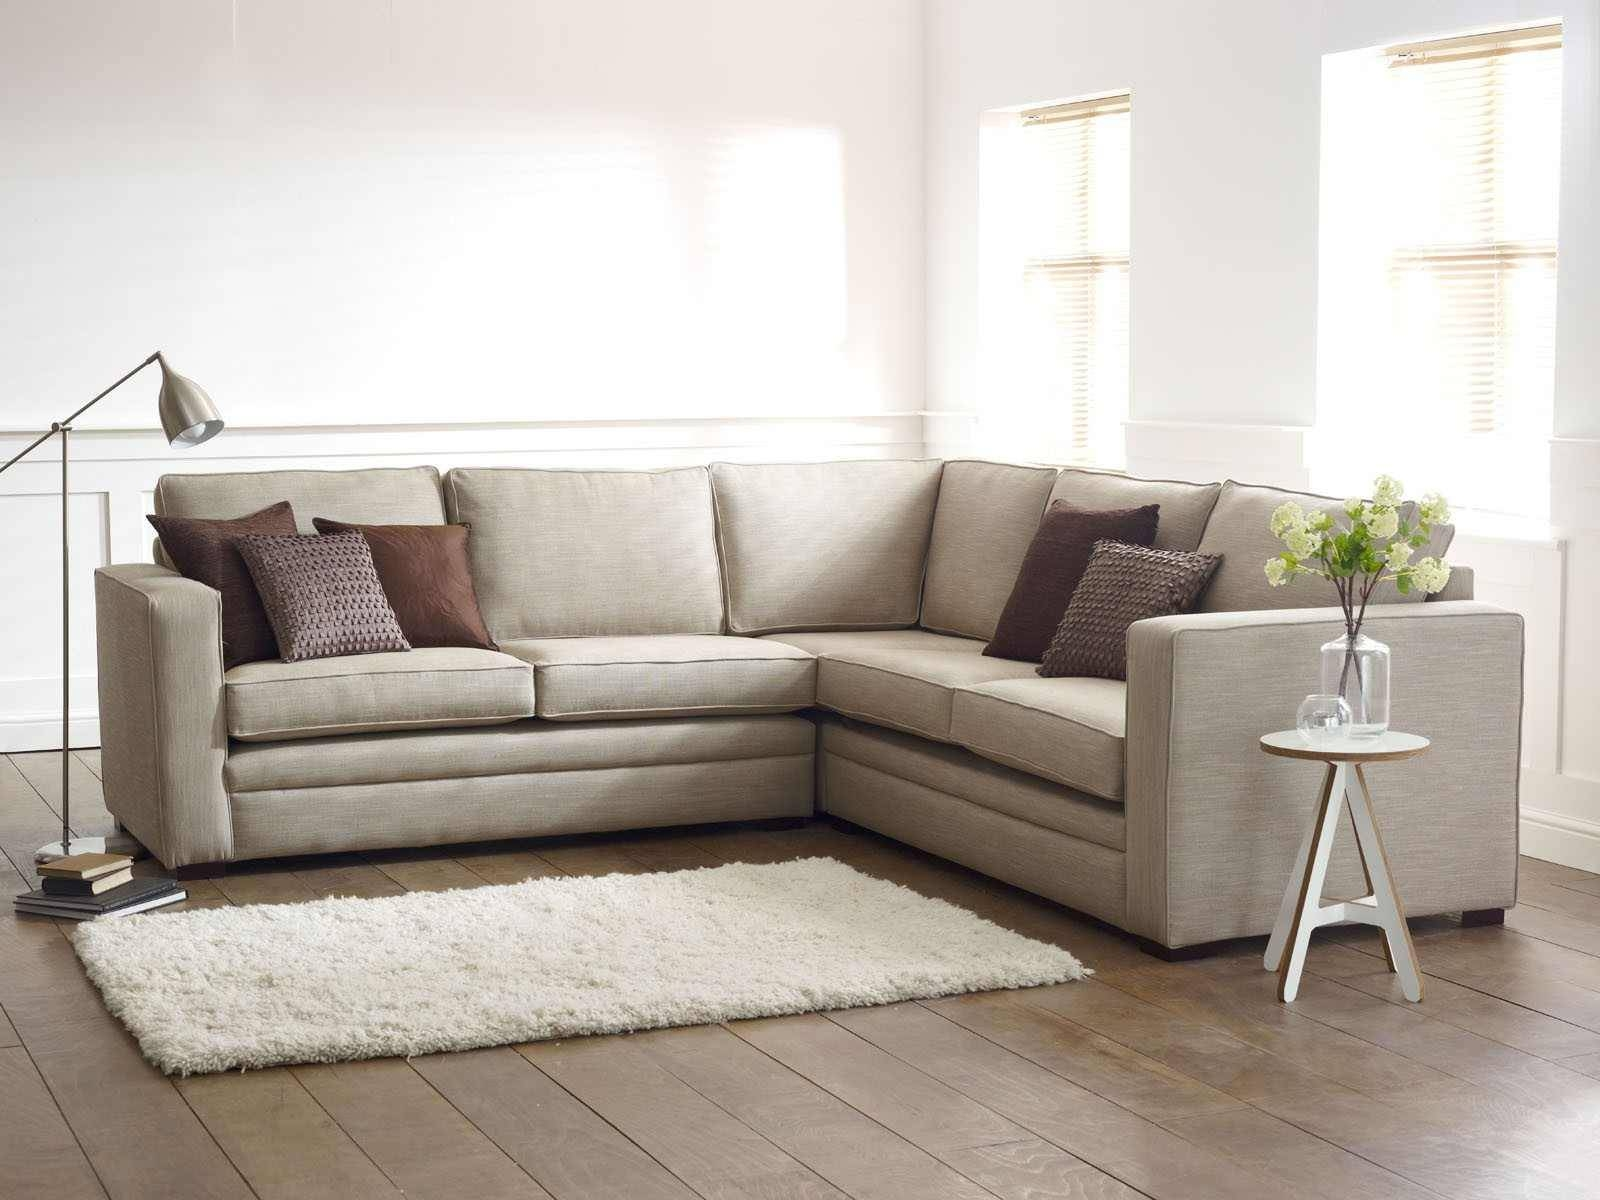 Modern L Shaped Couch — Liberty Interior pertaining to L Shaped Sofa Bed (Image 22 of 30)